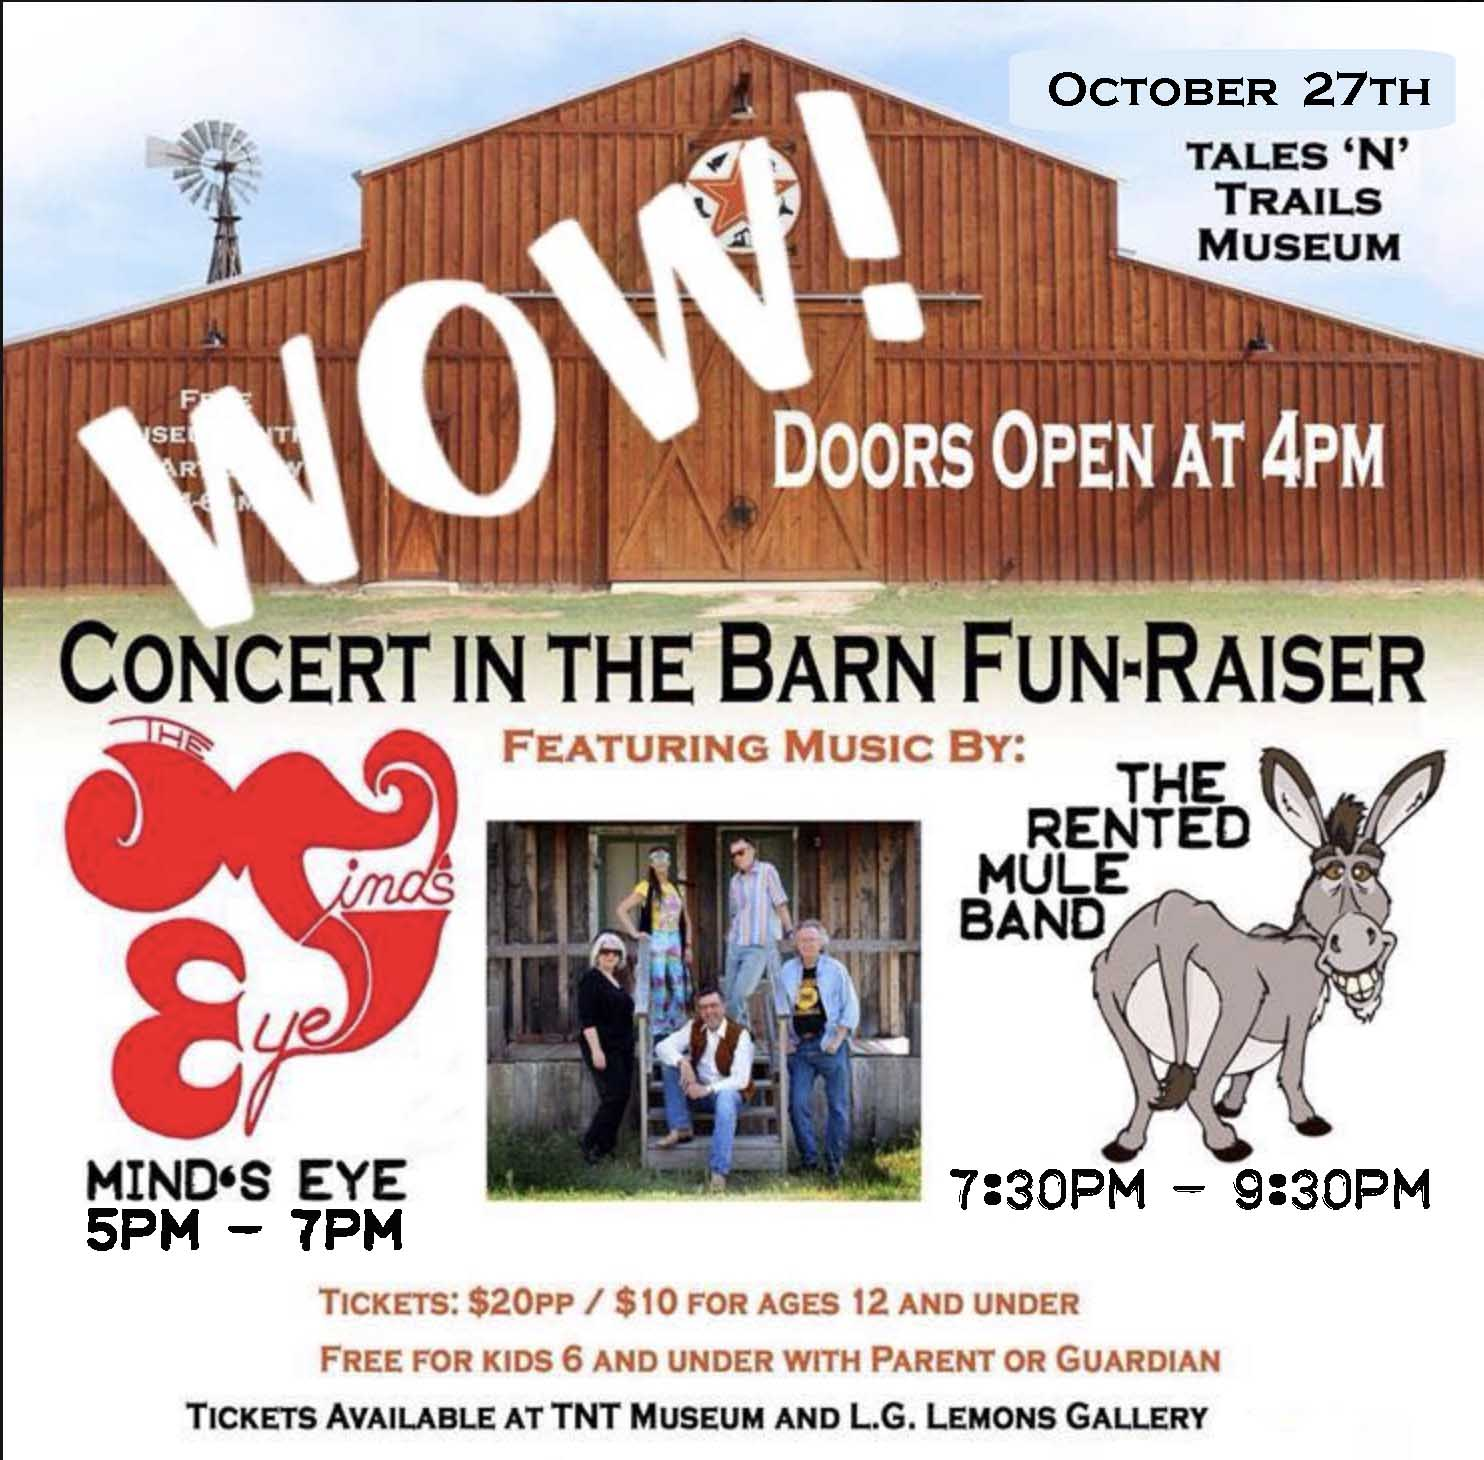 Concert in the Barn Fun-Raiser